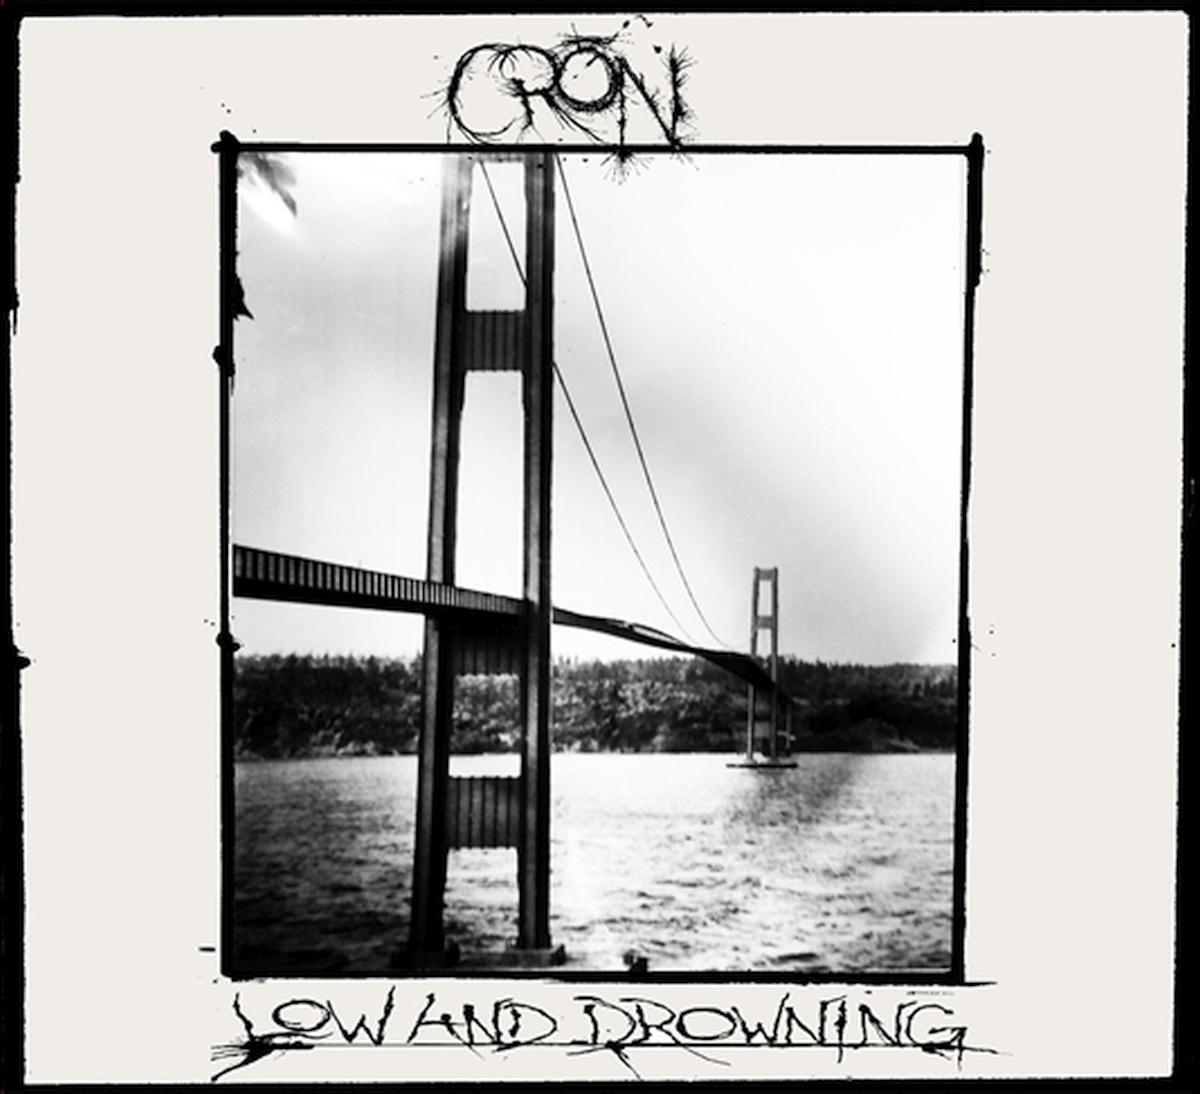 Cron | Low And Drowning | LP